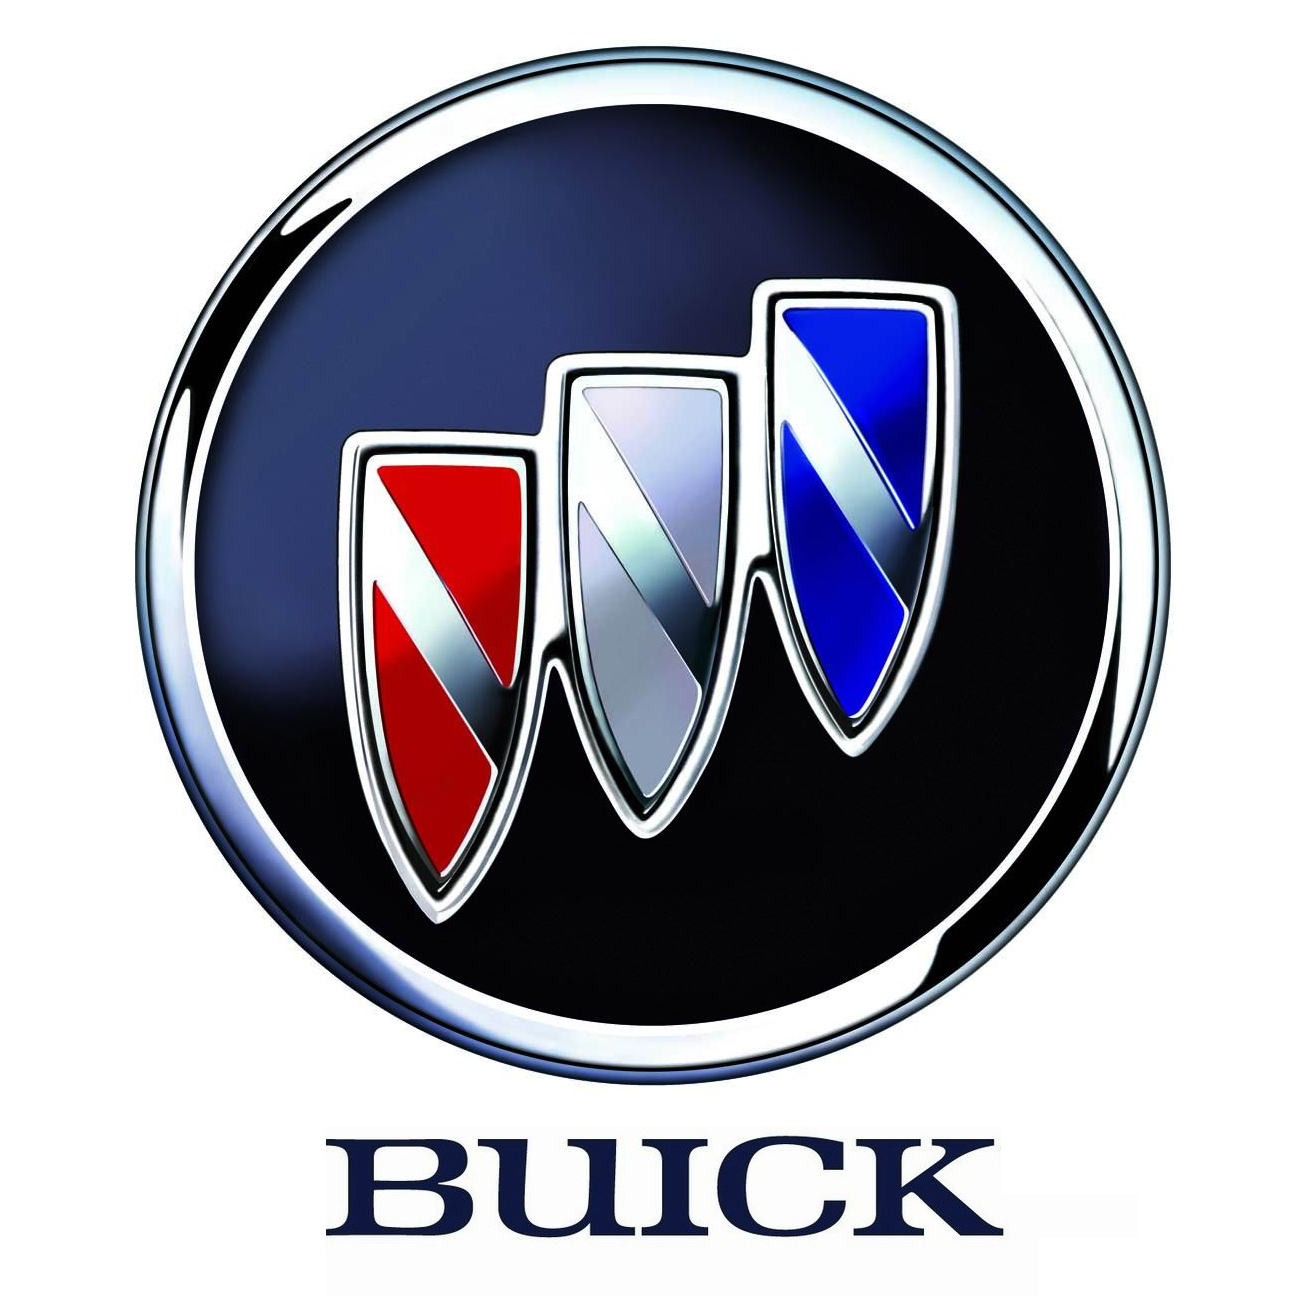 Old Buick Logo 40